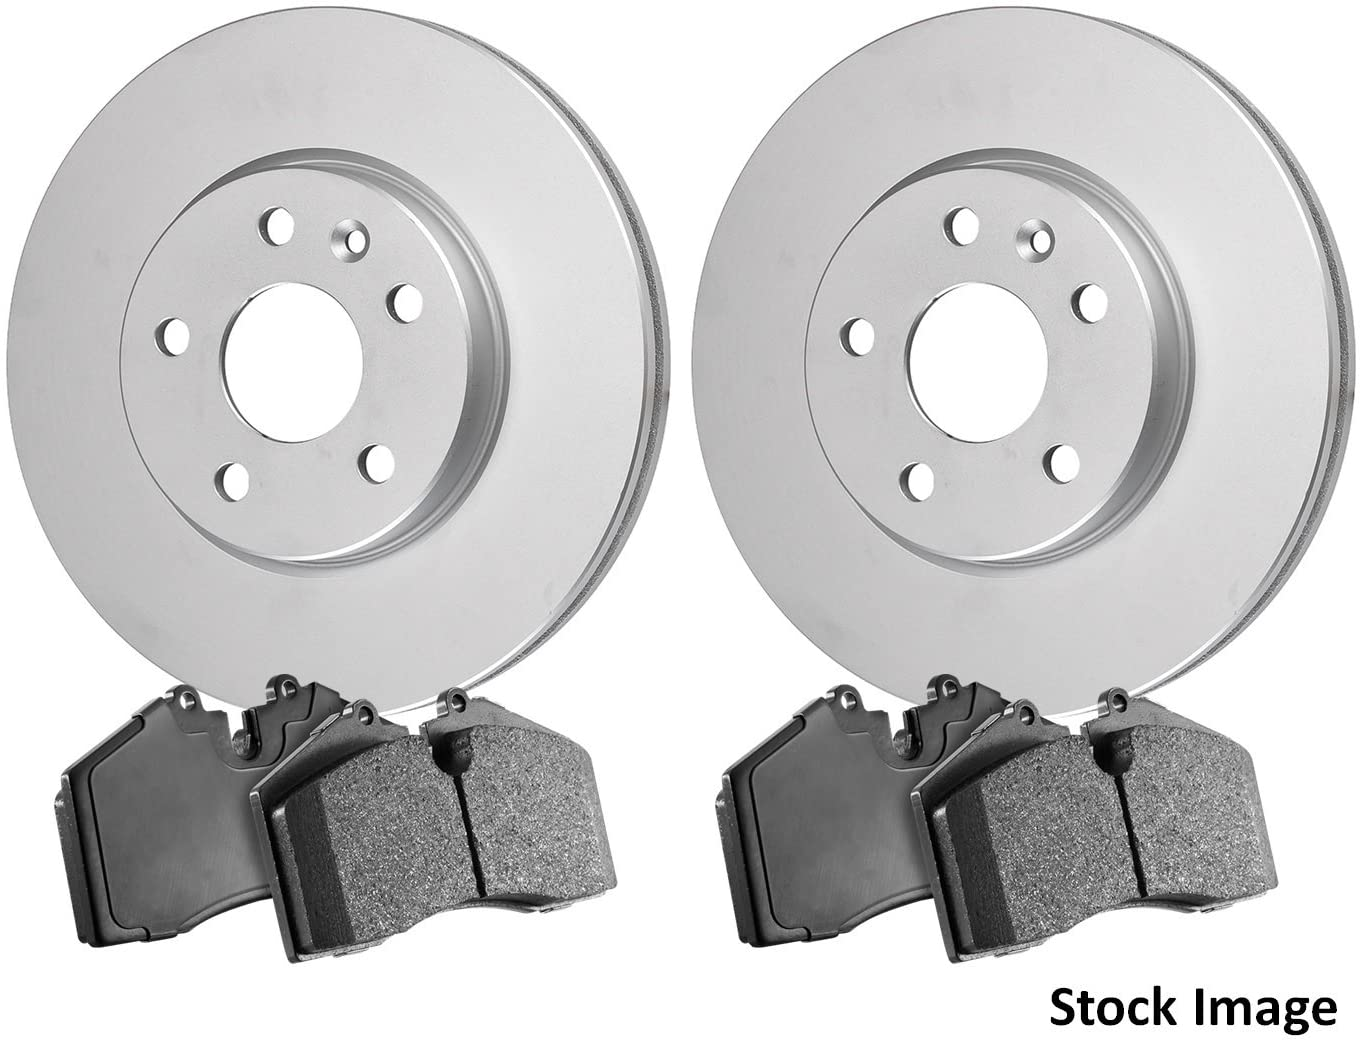 Stirling - 1993 For BMW 318is Front Anti Rust Coated Disc Brake Rotors and Ceramic Brake Pads